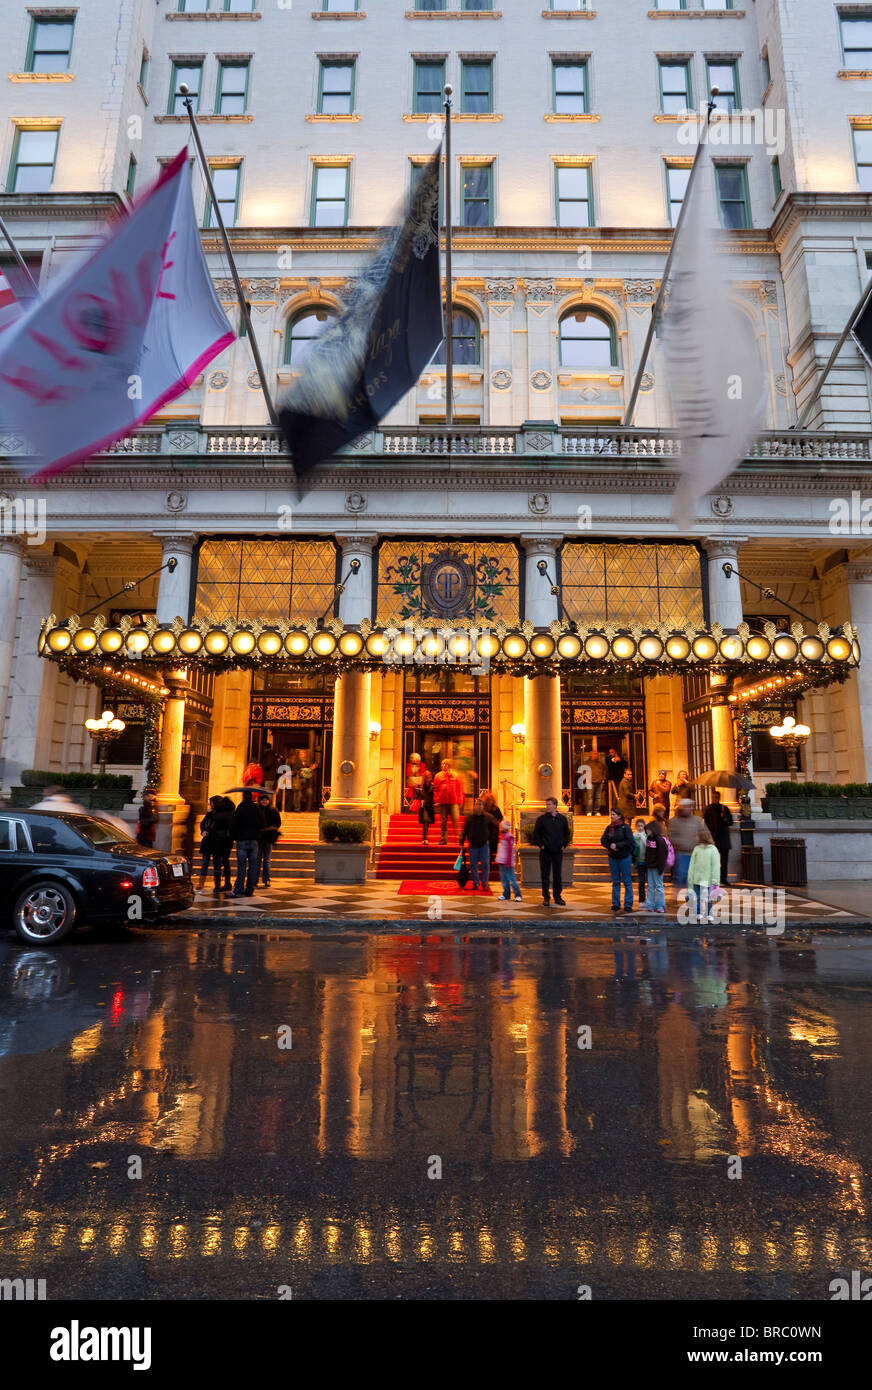 Entrance to the Plaza Hotel on Fifth Avenue, Manhattan, New York City, New York, USA - Stock Image